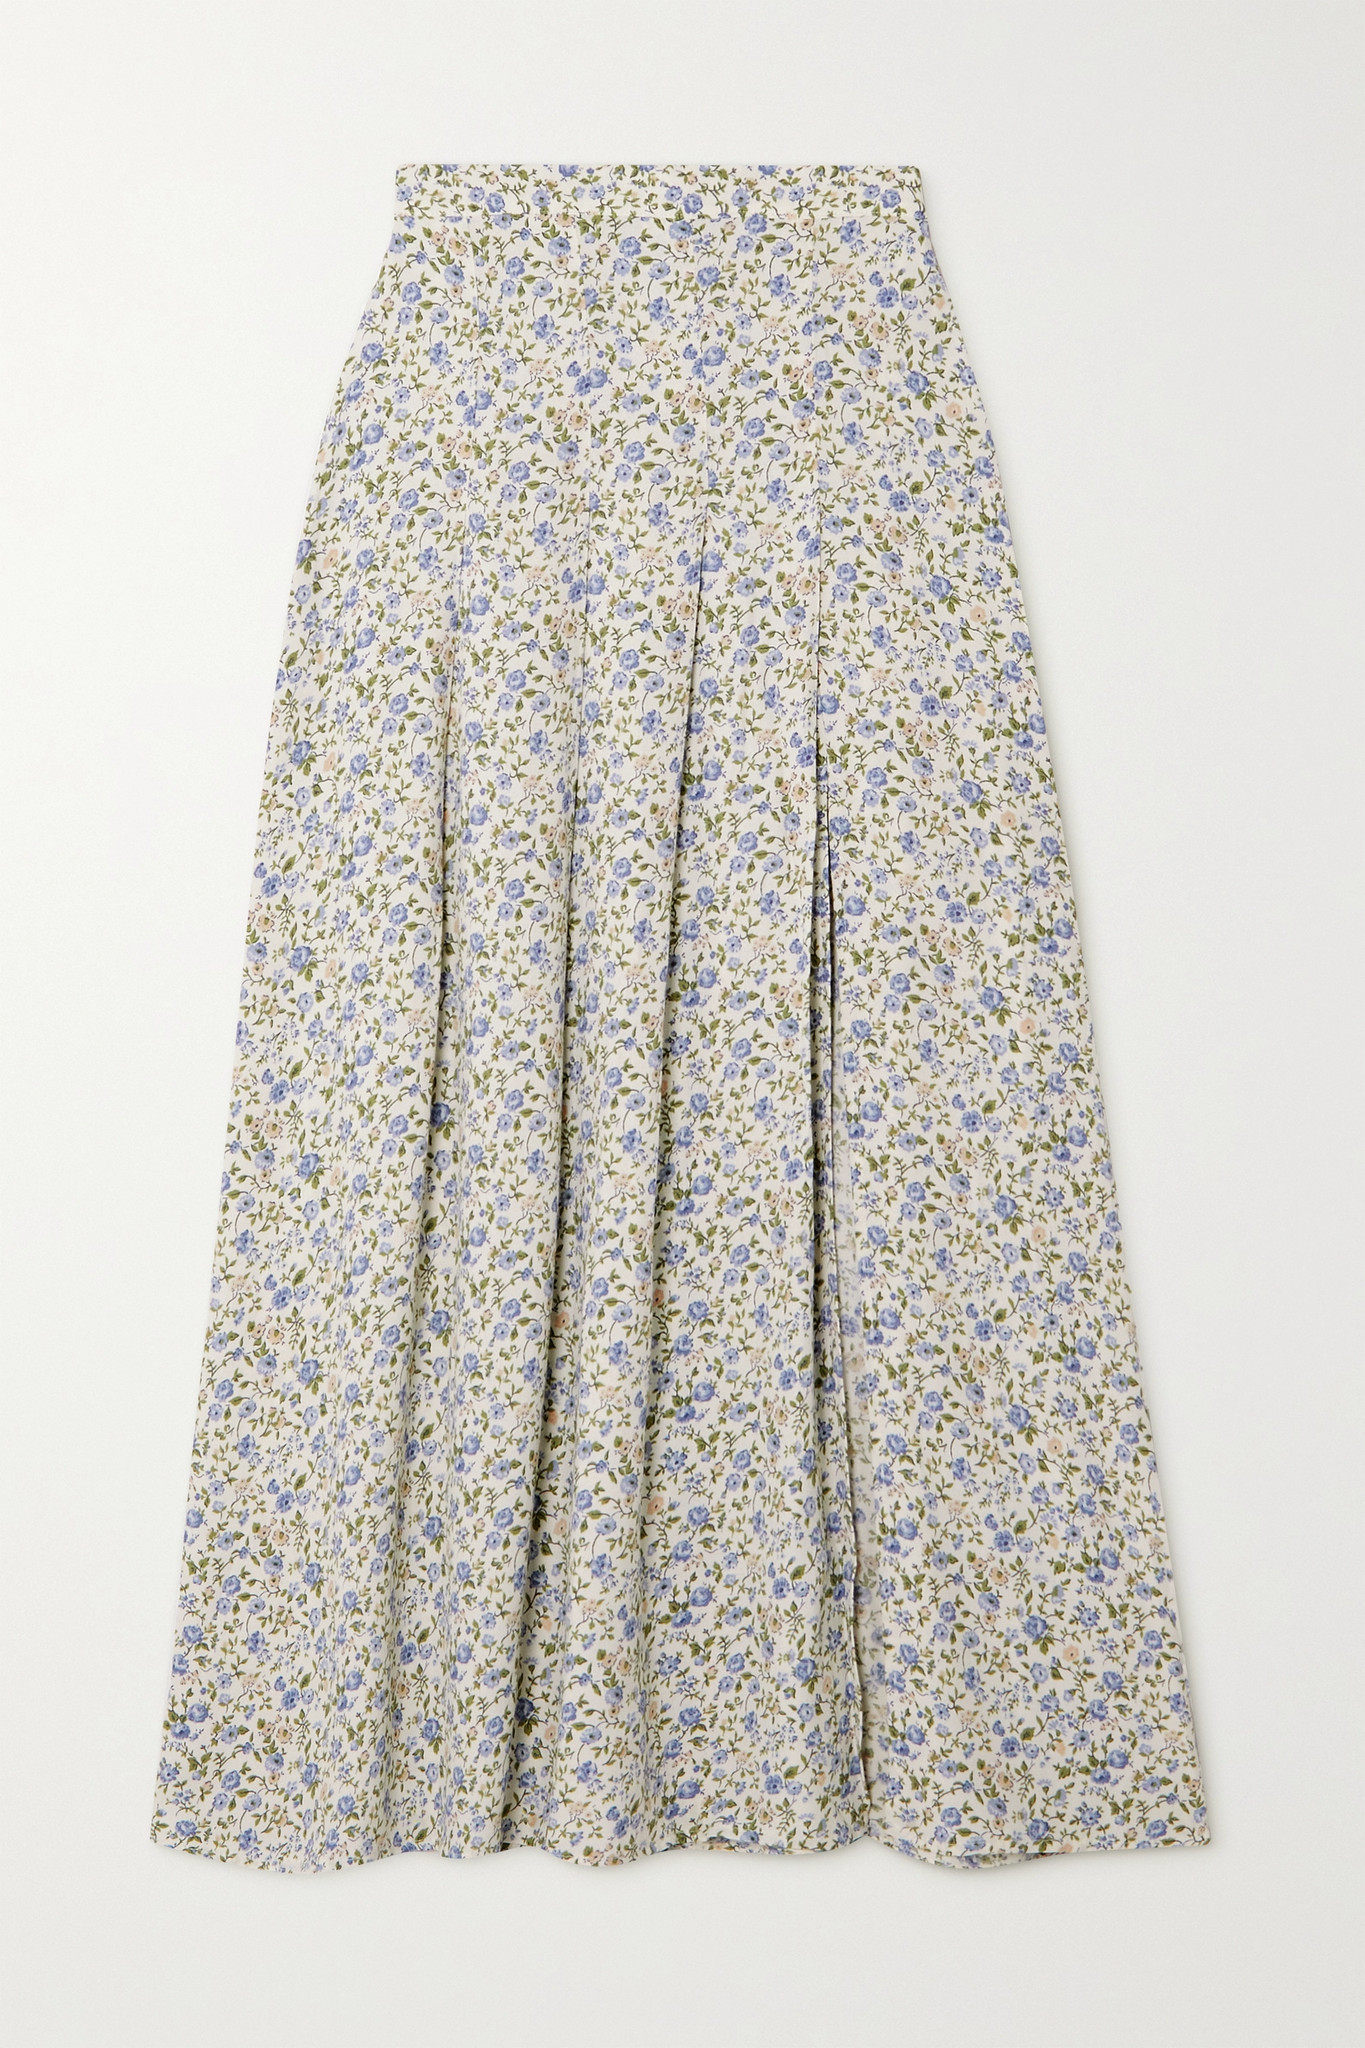 REFORMATION - + Net Sustain Maisie Pleated Floral-print Crepe Midi Skirt - White - US6